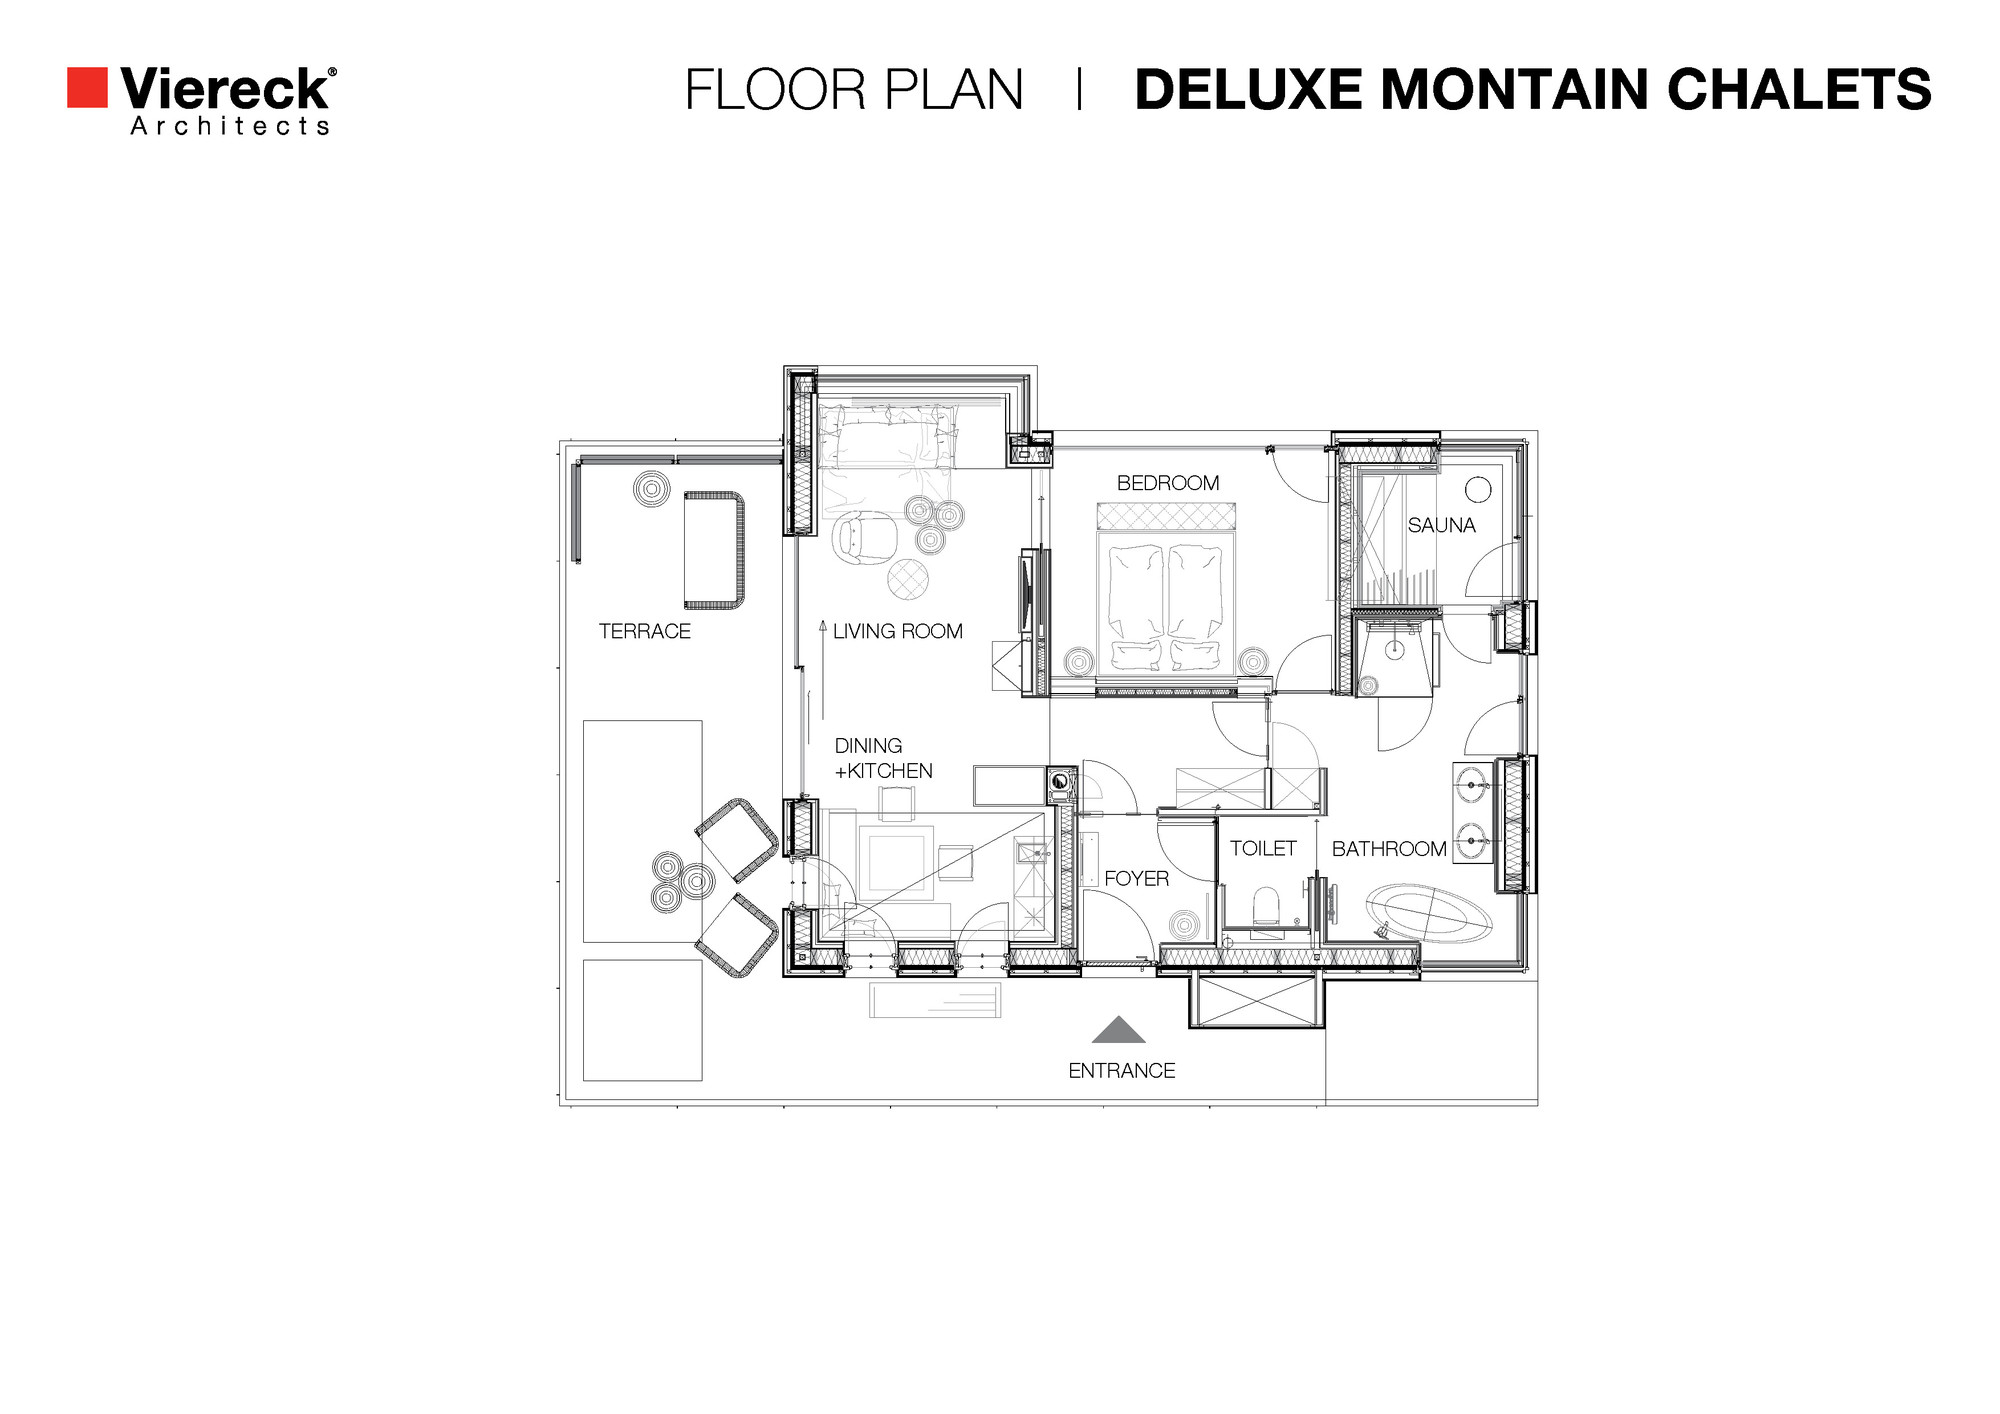 Gallery of deluxe mountain chalets viereck architects 22 for Mountain architecture floor plans